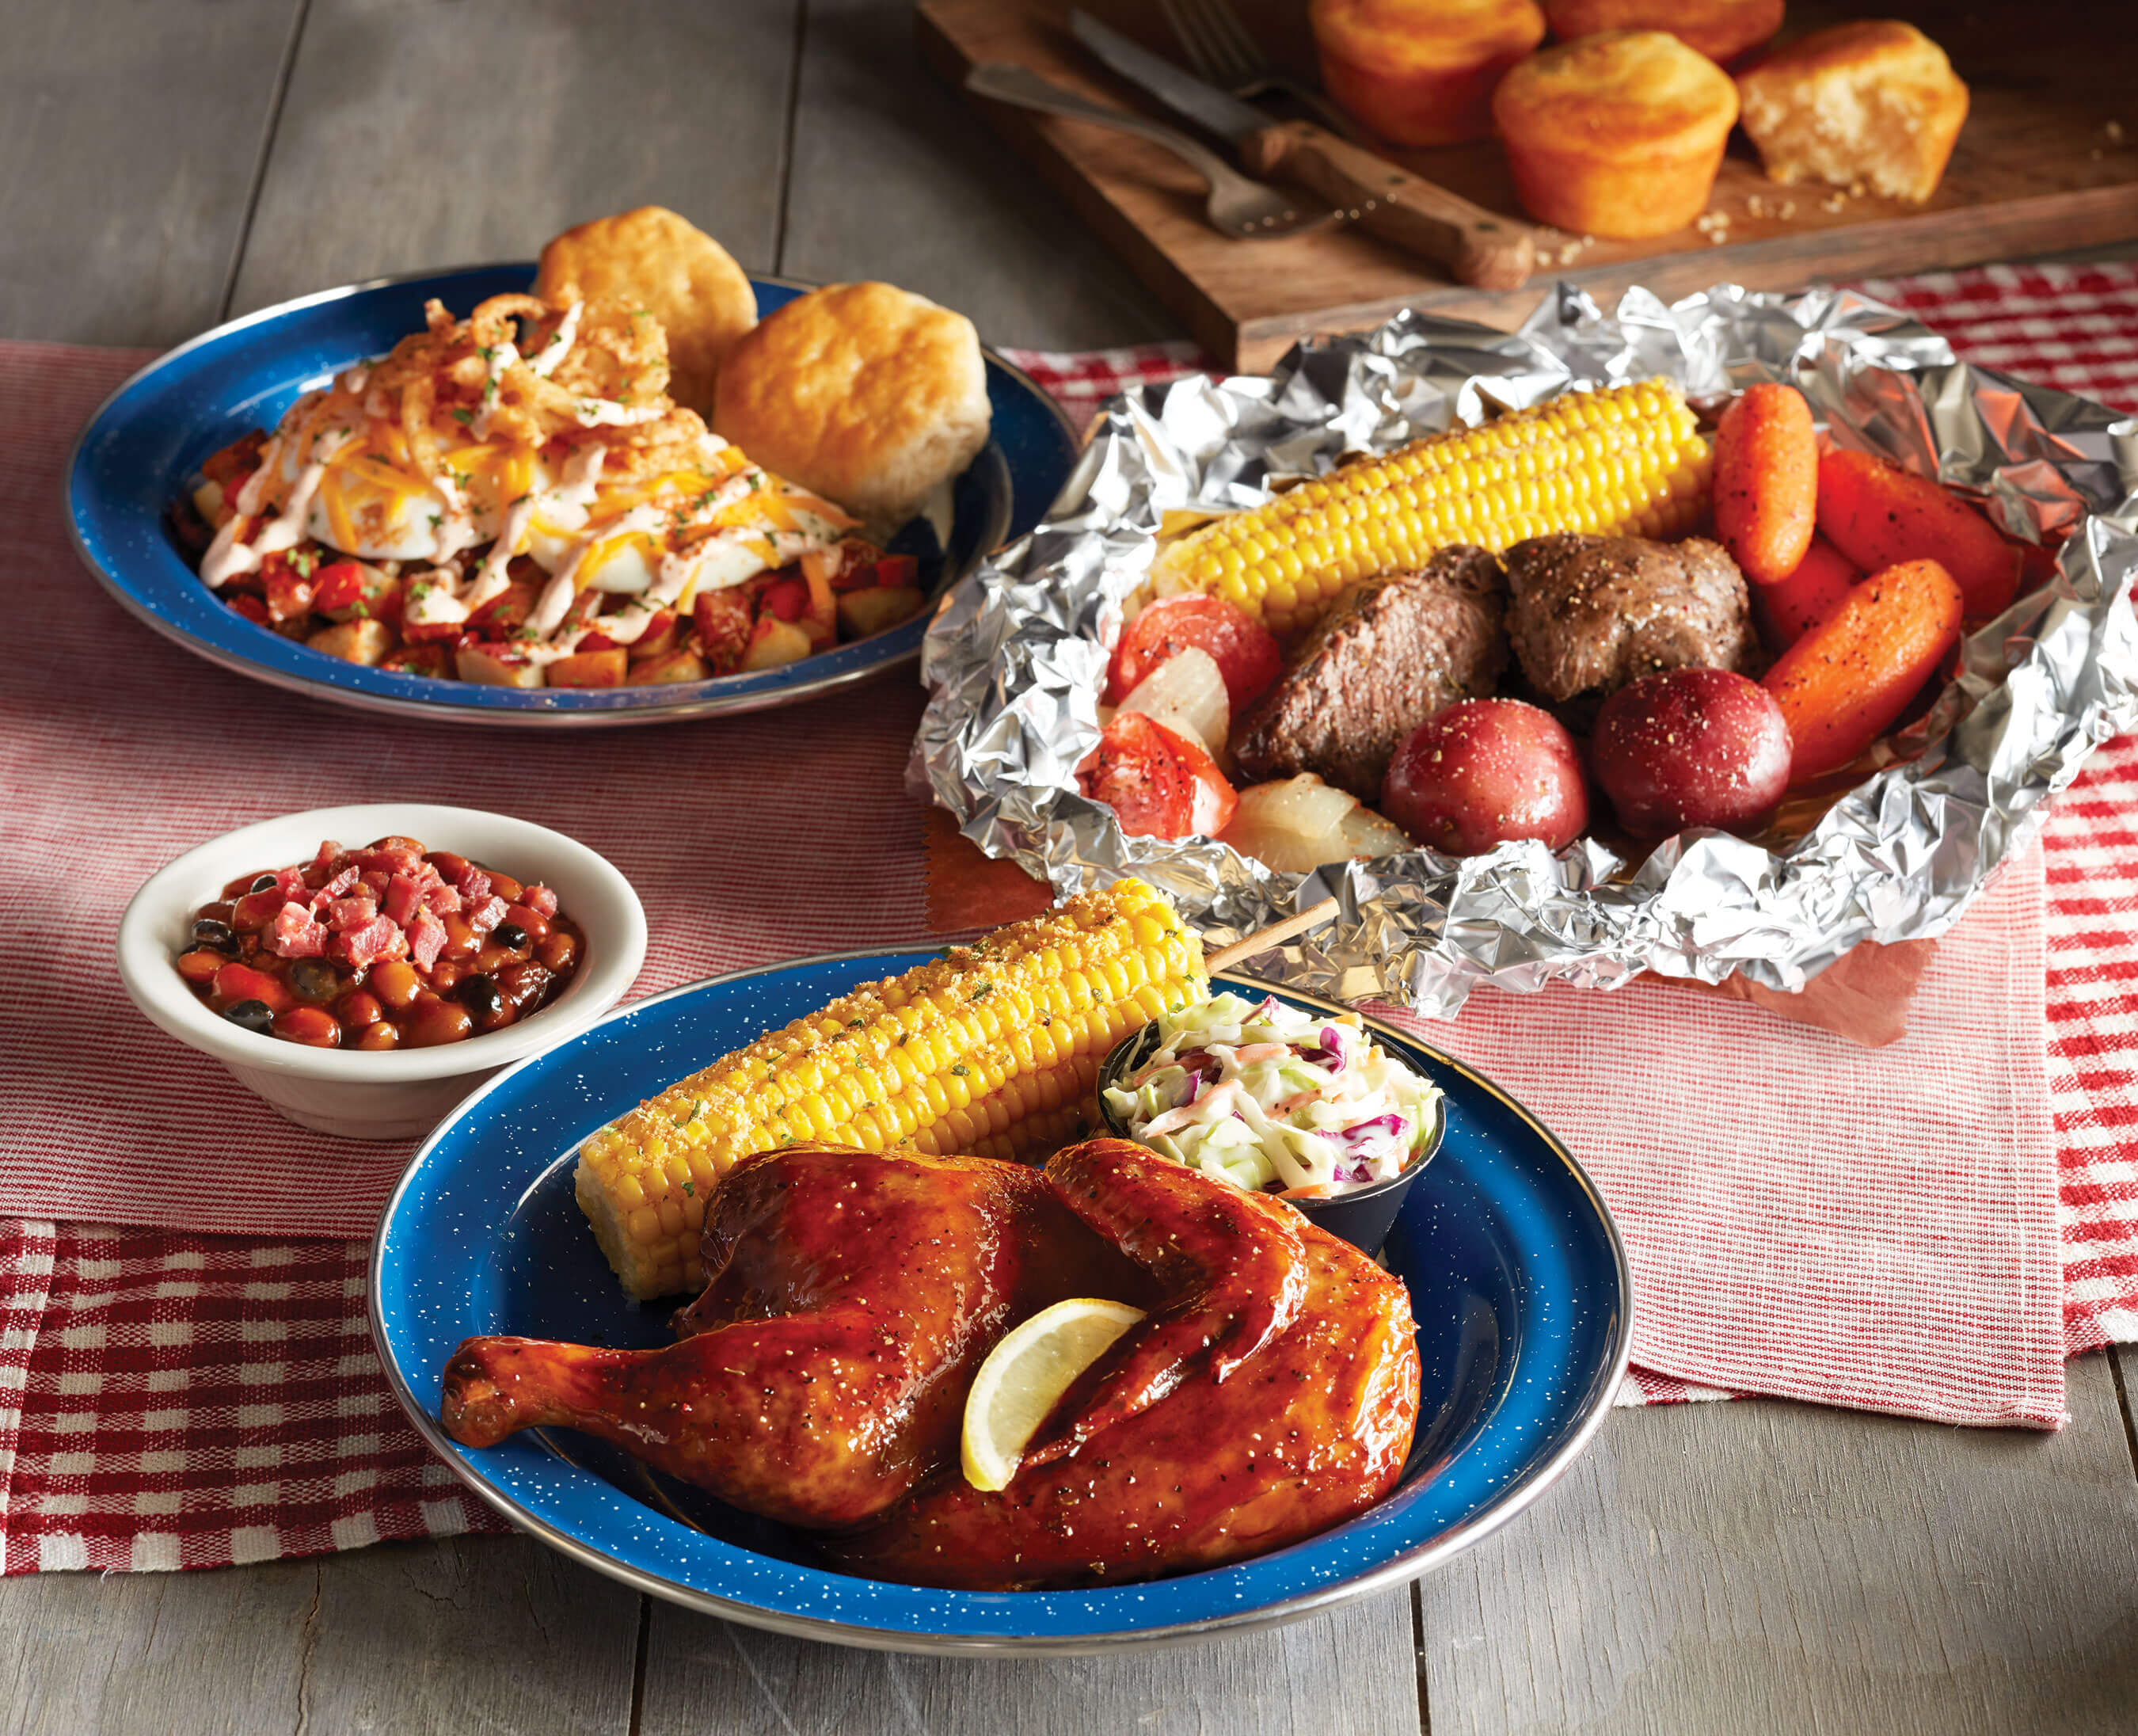 cracker barrel old country store<sup>®</sup> introduces expanded